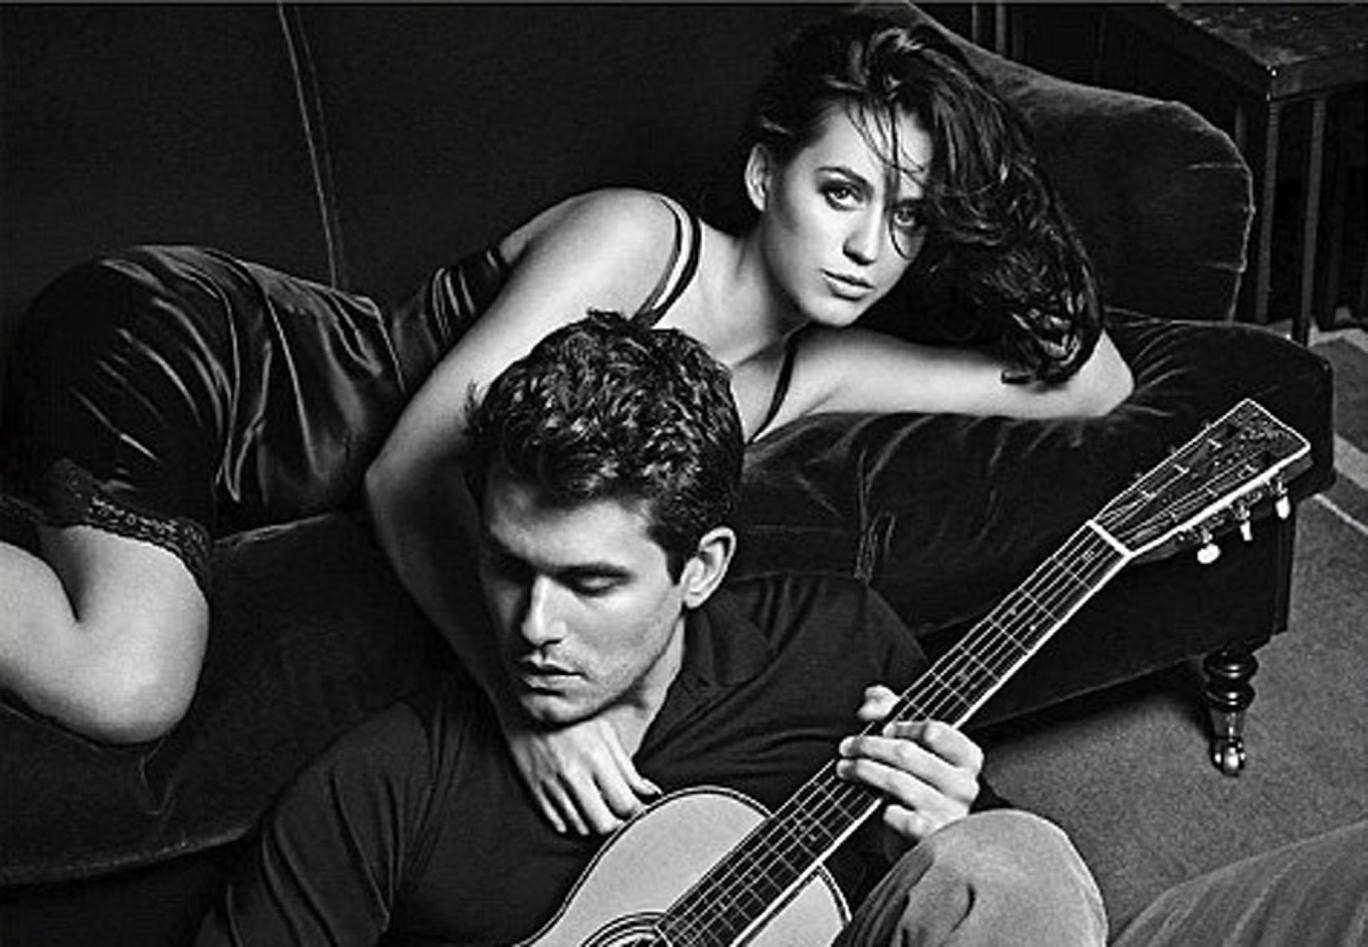 Katy Perry and John Mayer pose on the cover of their new single